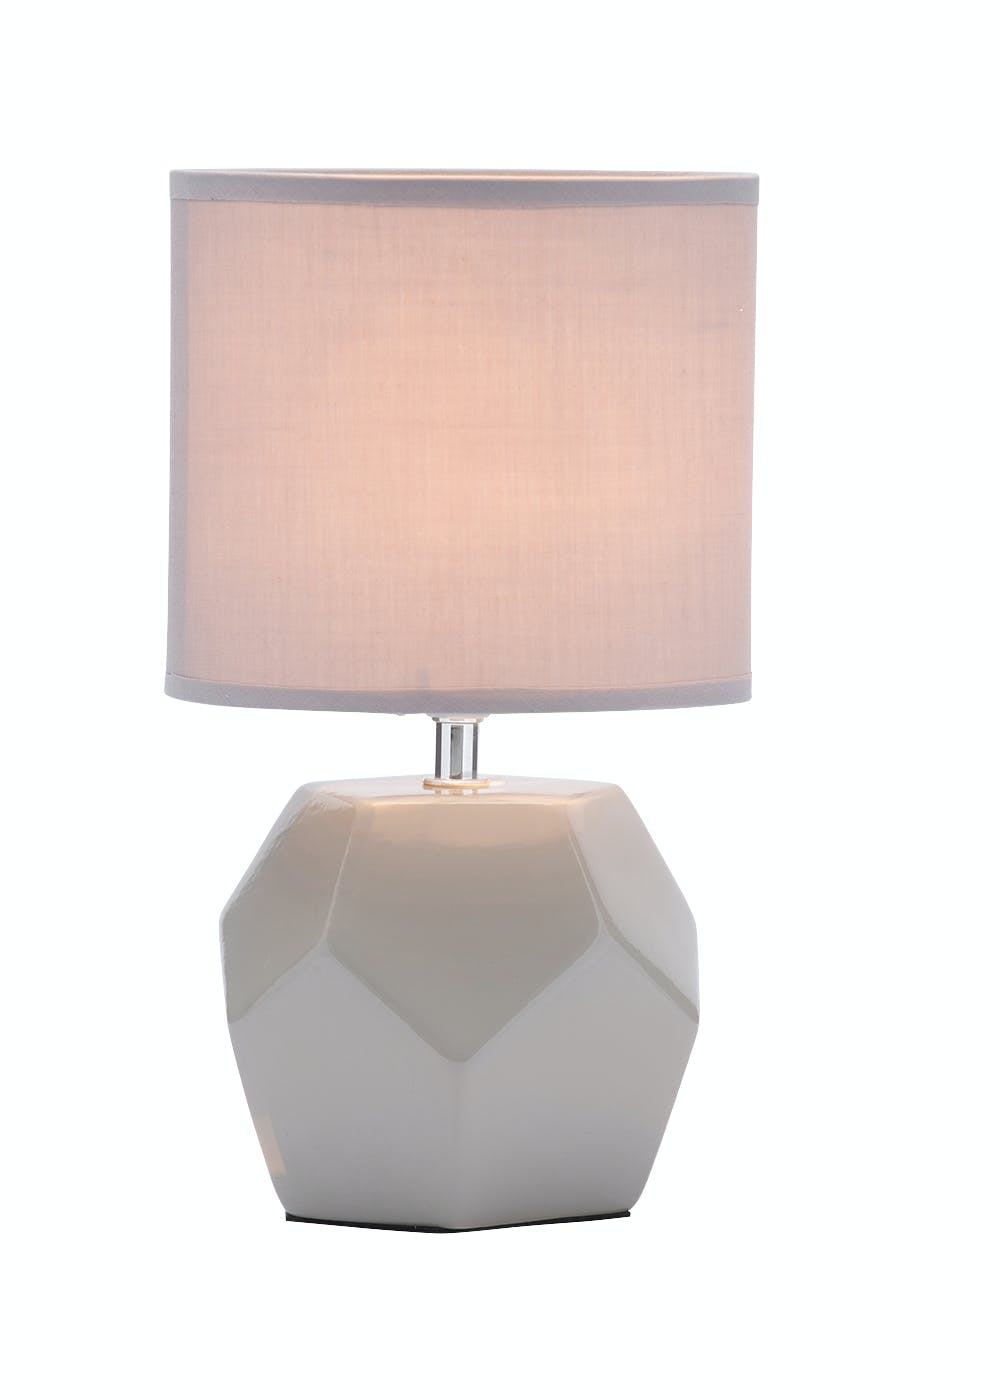 Nordic simple orb clear glass pendant lighting Xqy Living Geometric Ceramic Table Lamp h30cm W17cm Zanui Lighting Great Quality Lighting Products For Every Room Matalan